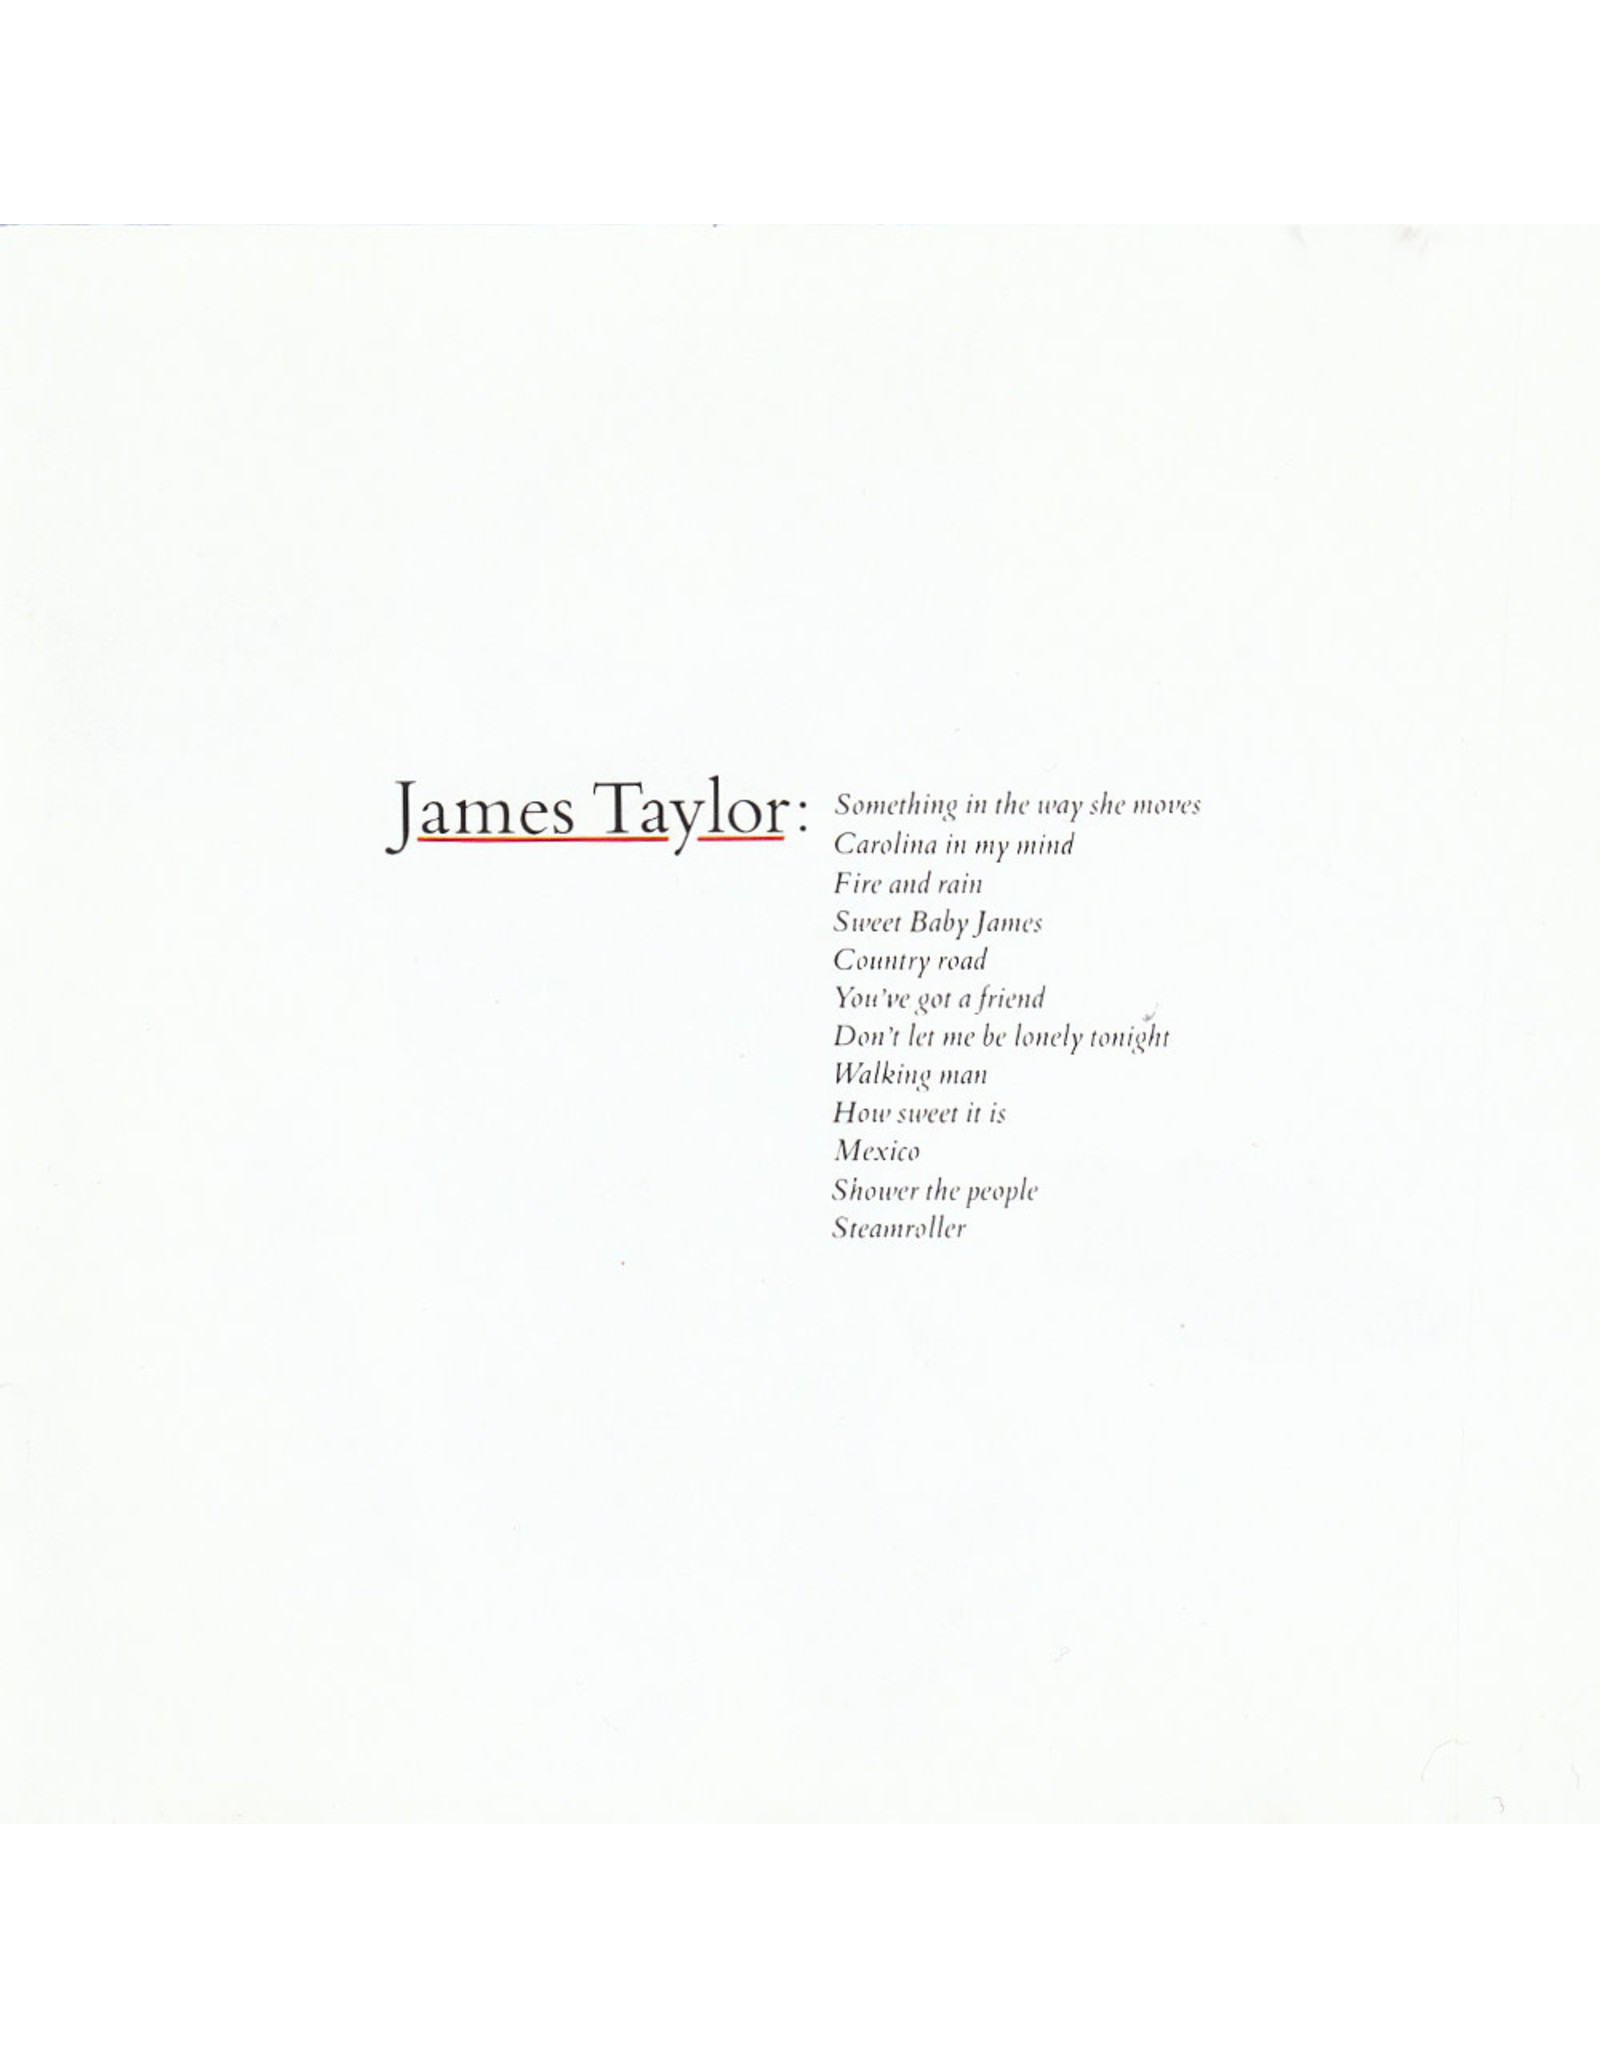 James Taylor - Greatest Hits (Peter Asher 2020 Remaster)